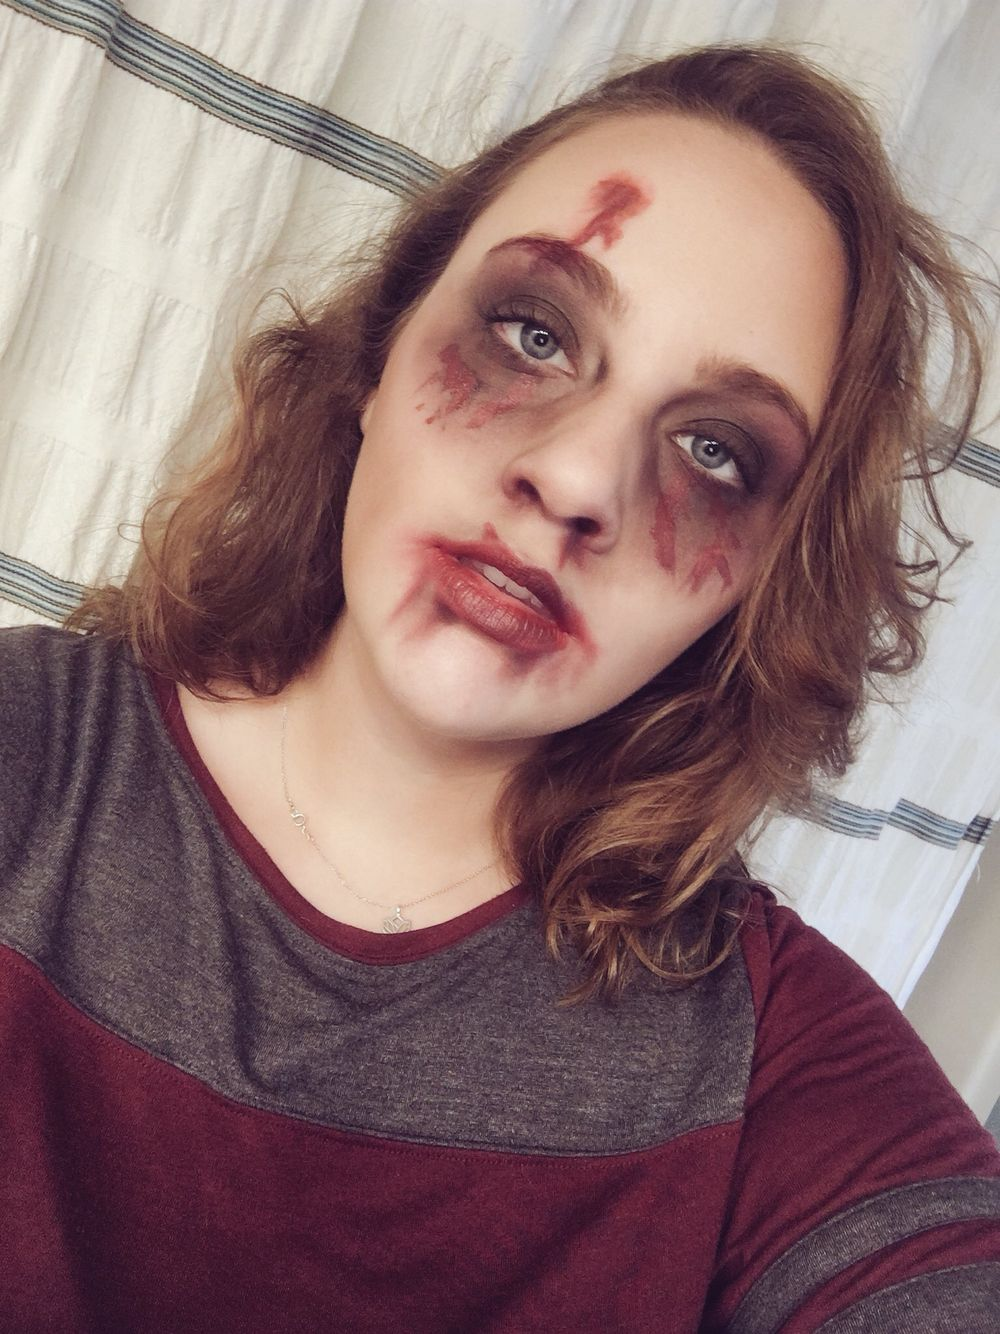 Easy zombie makeup with everyday makeup in 2019